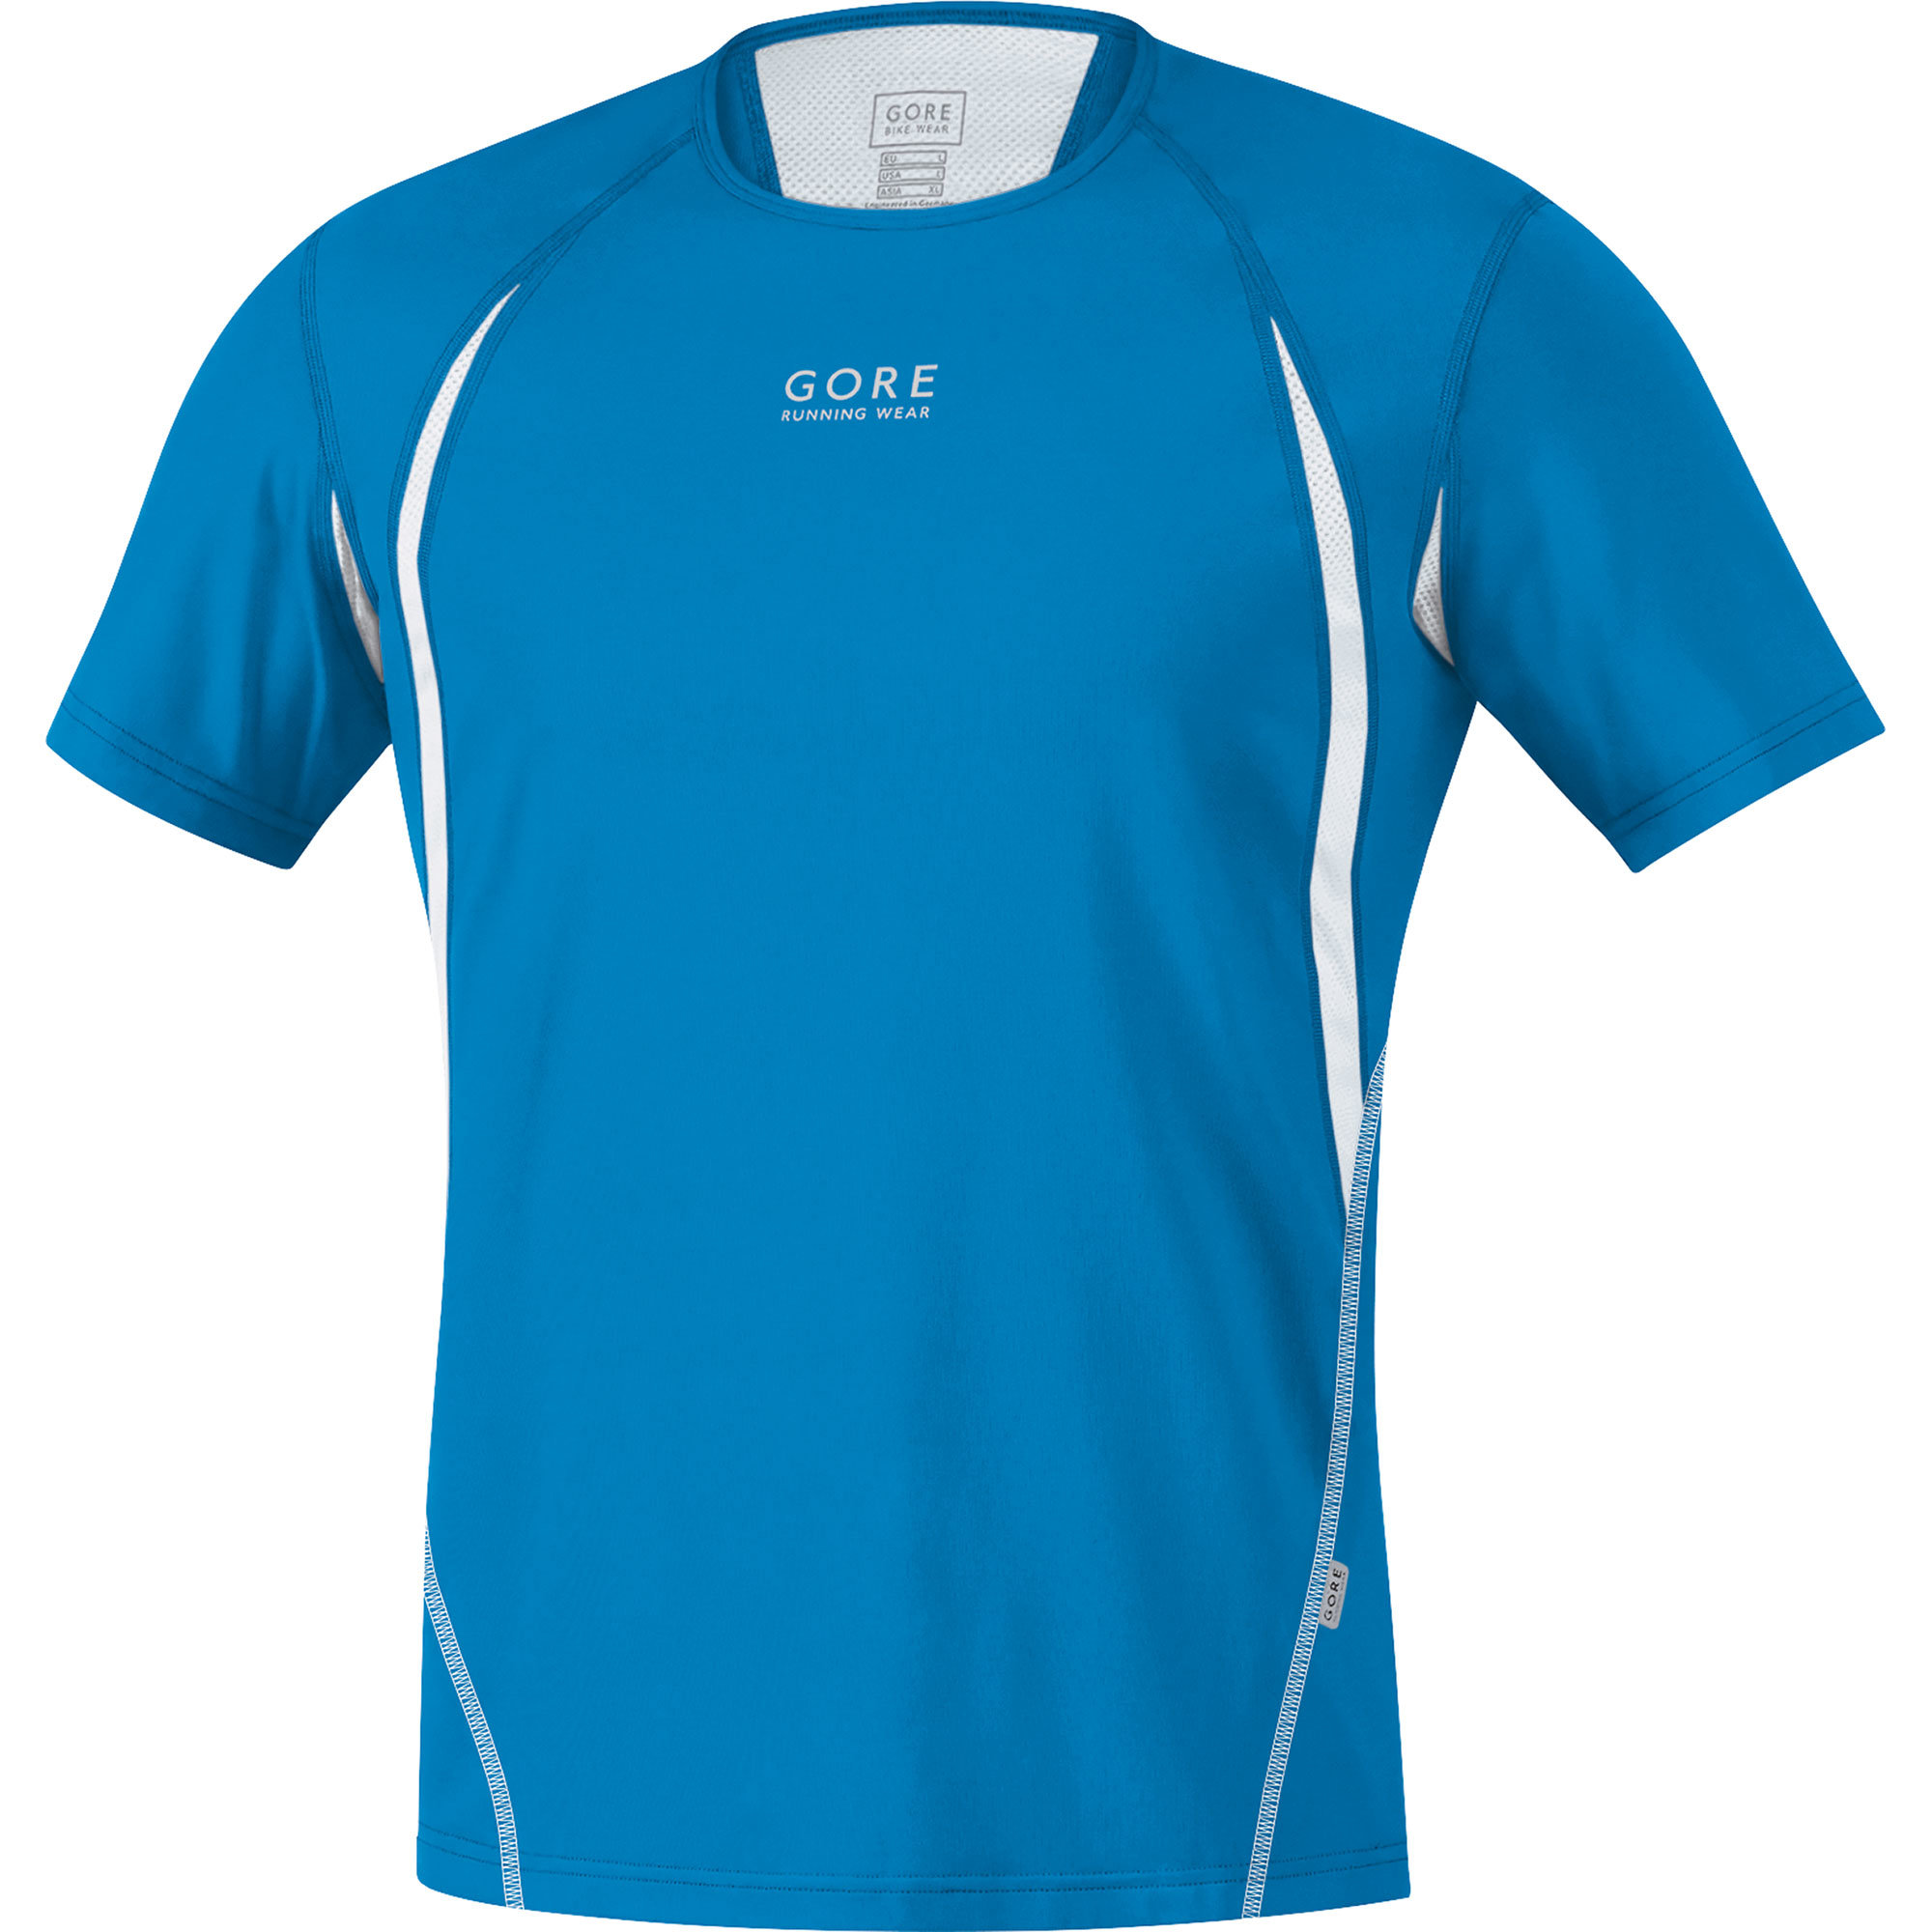 Gore AIR 2.0 Shirt in Blau